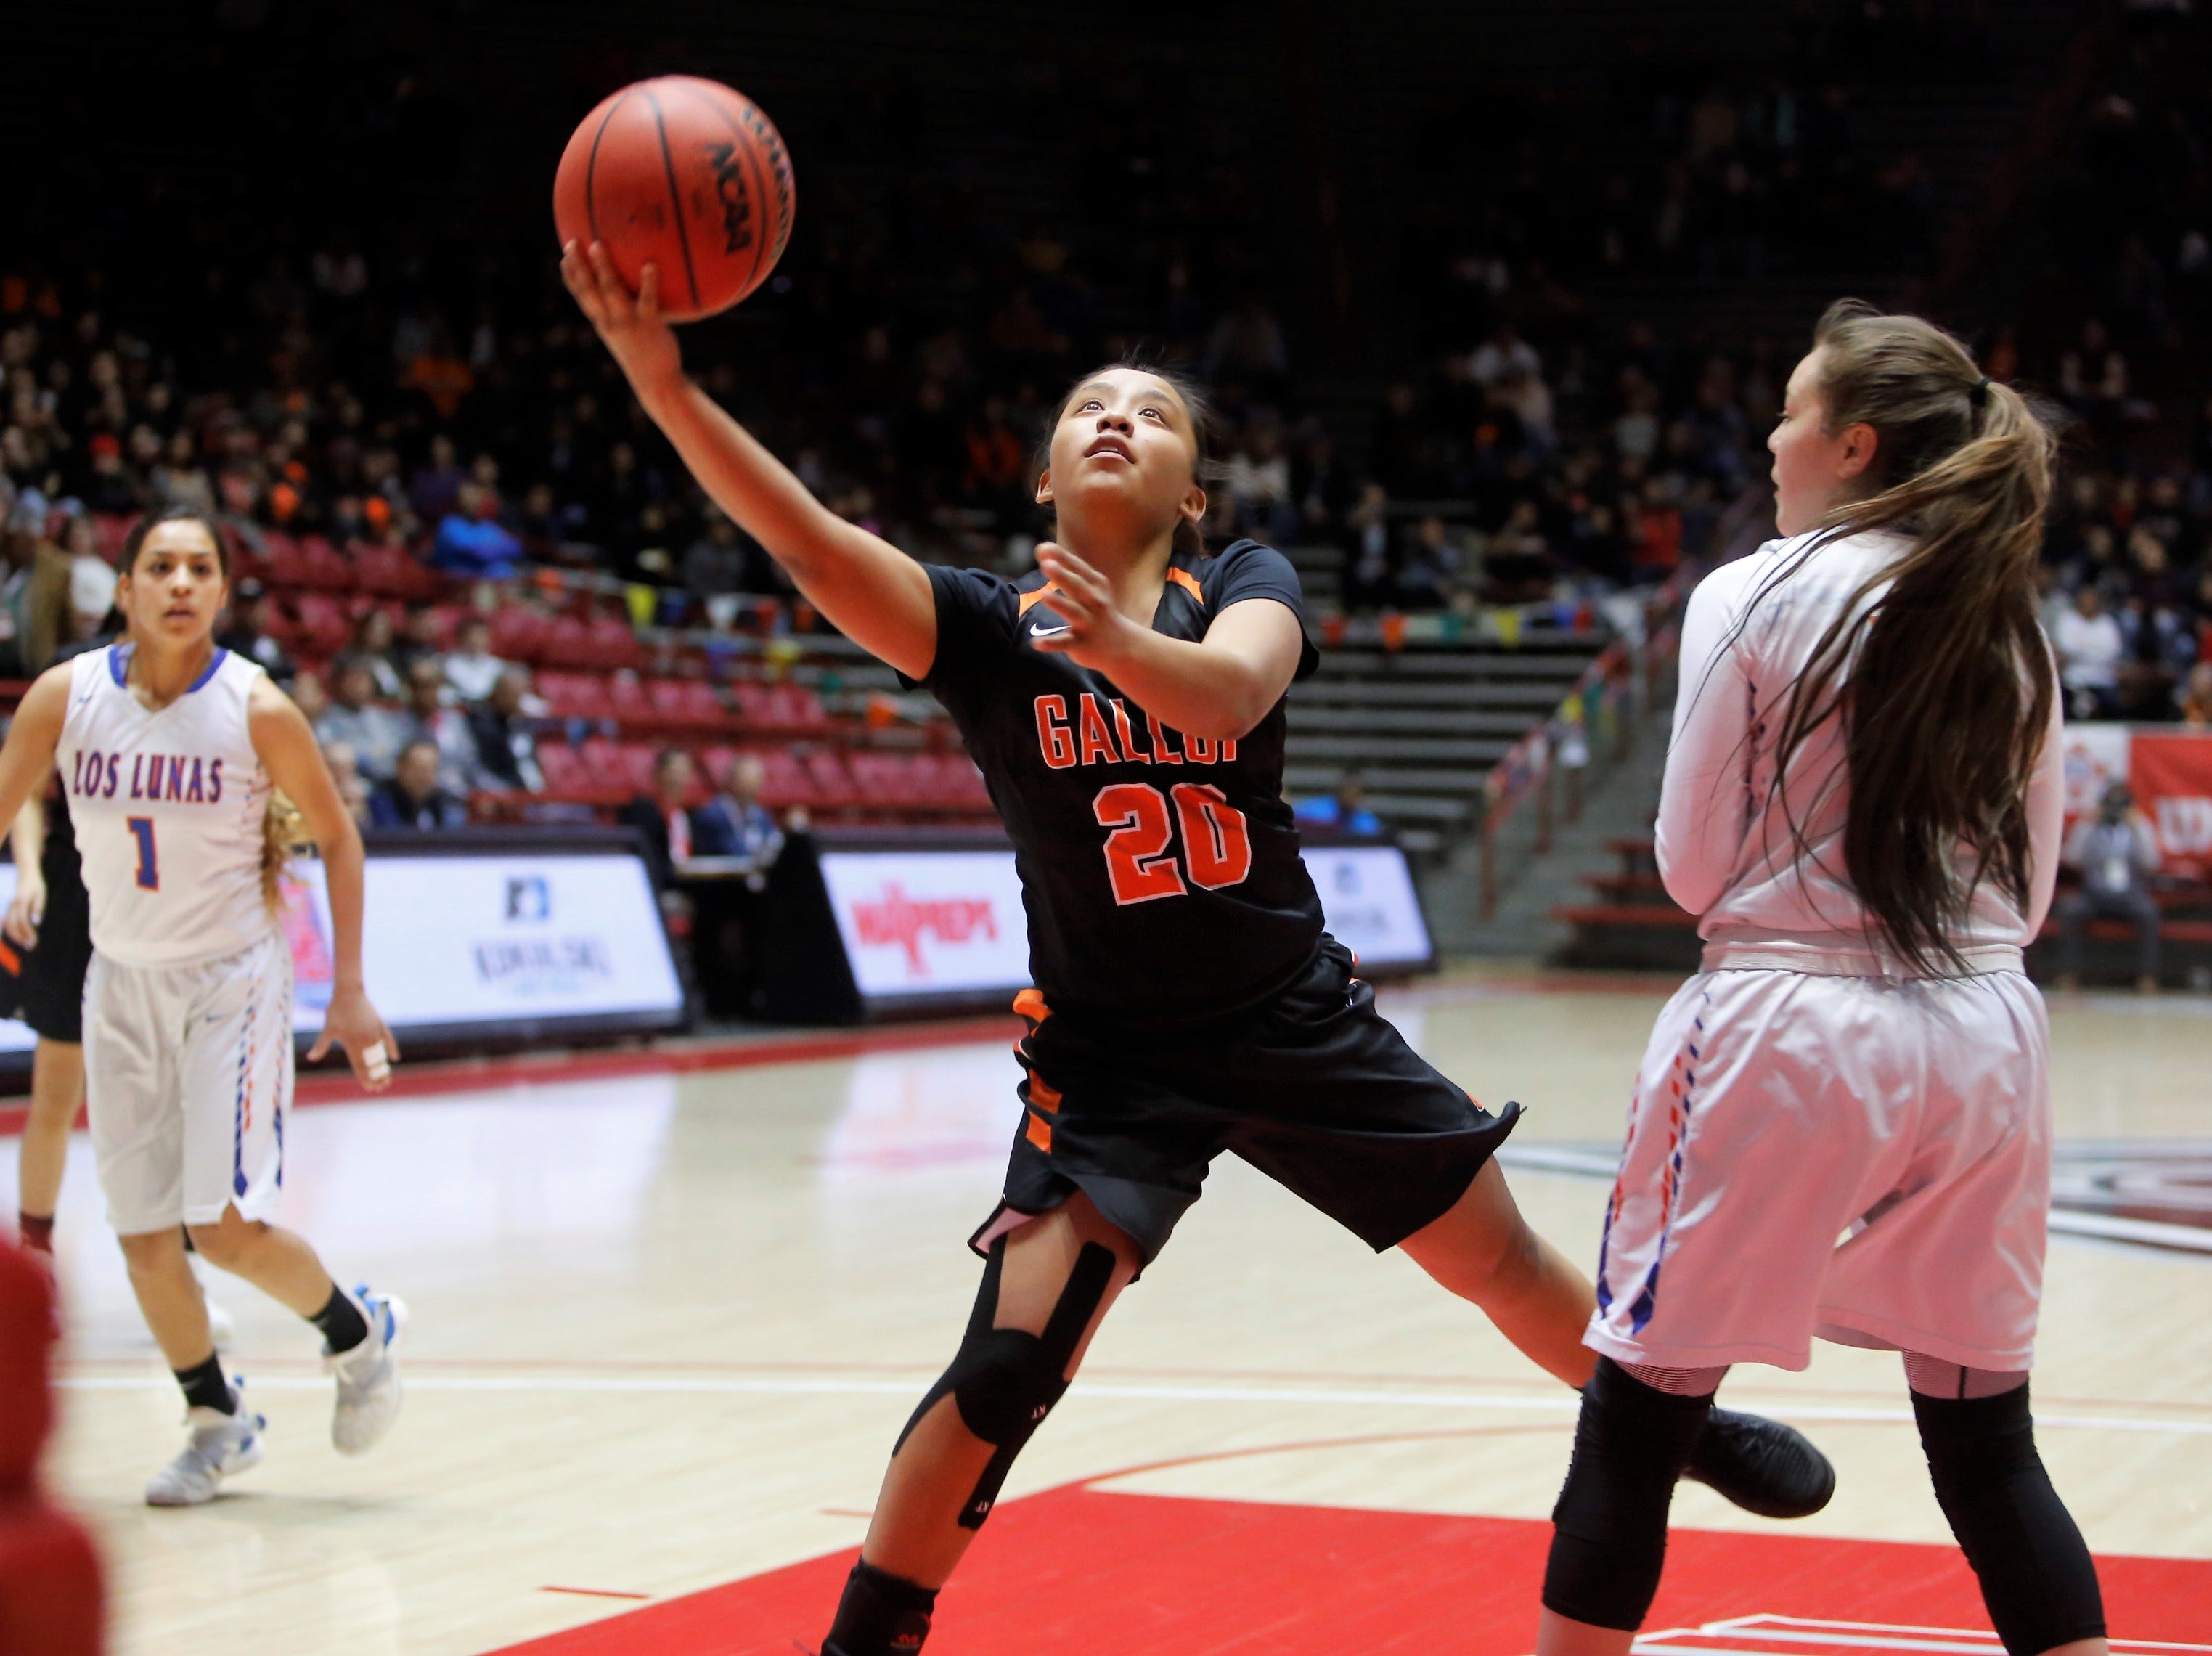 Gallup's Kamryn Yazzie drives in for an easy layup against Los Lunas during Thursday's 4A state semifinals at Dreamstyle Arena in Albuquerque.